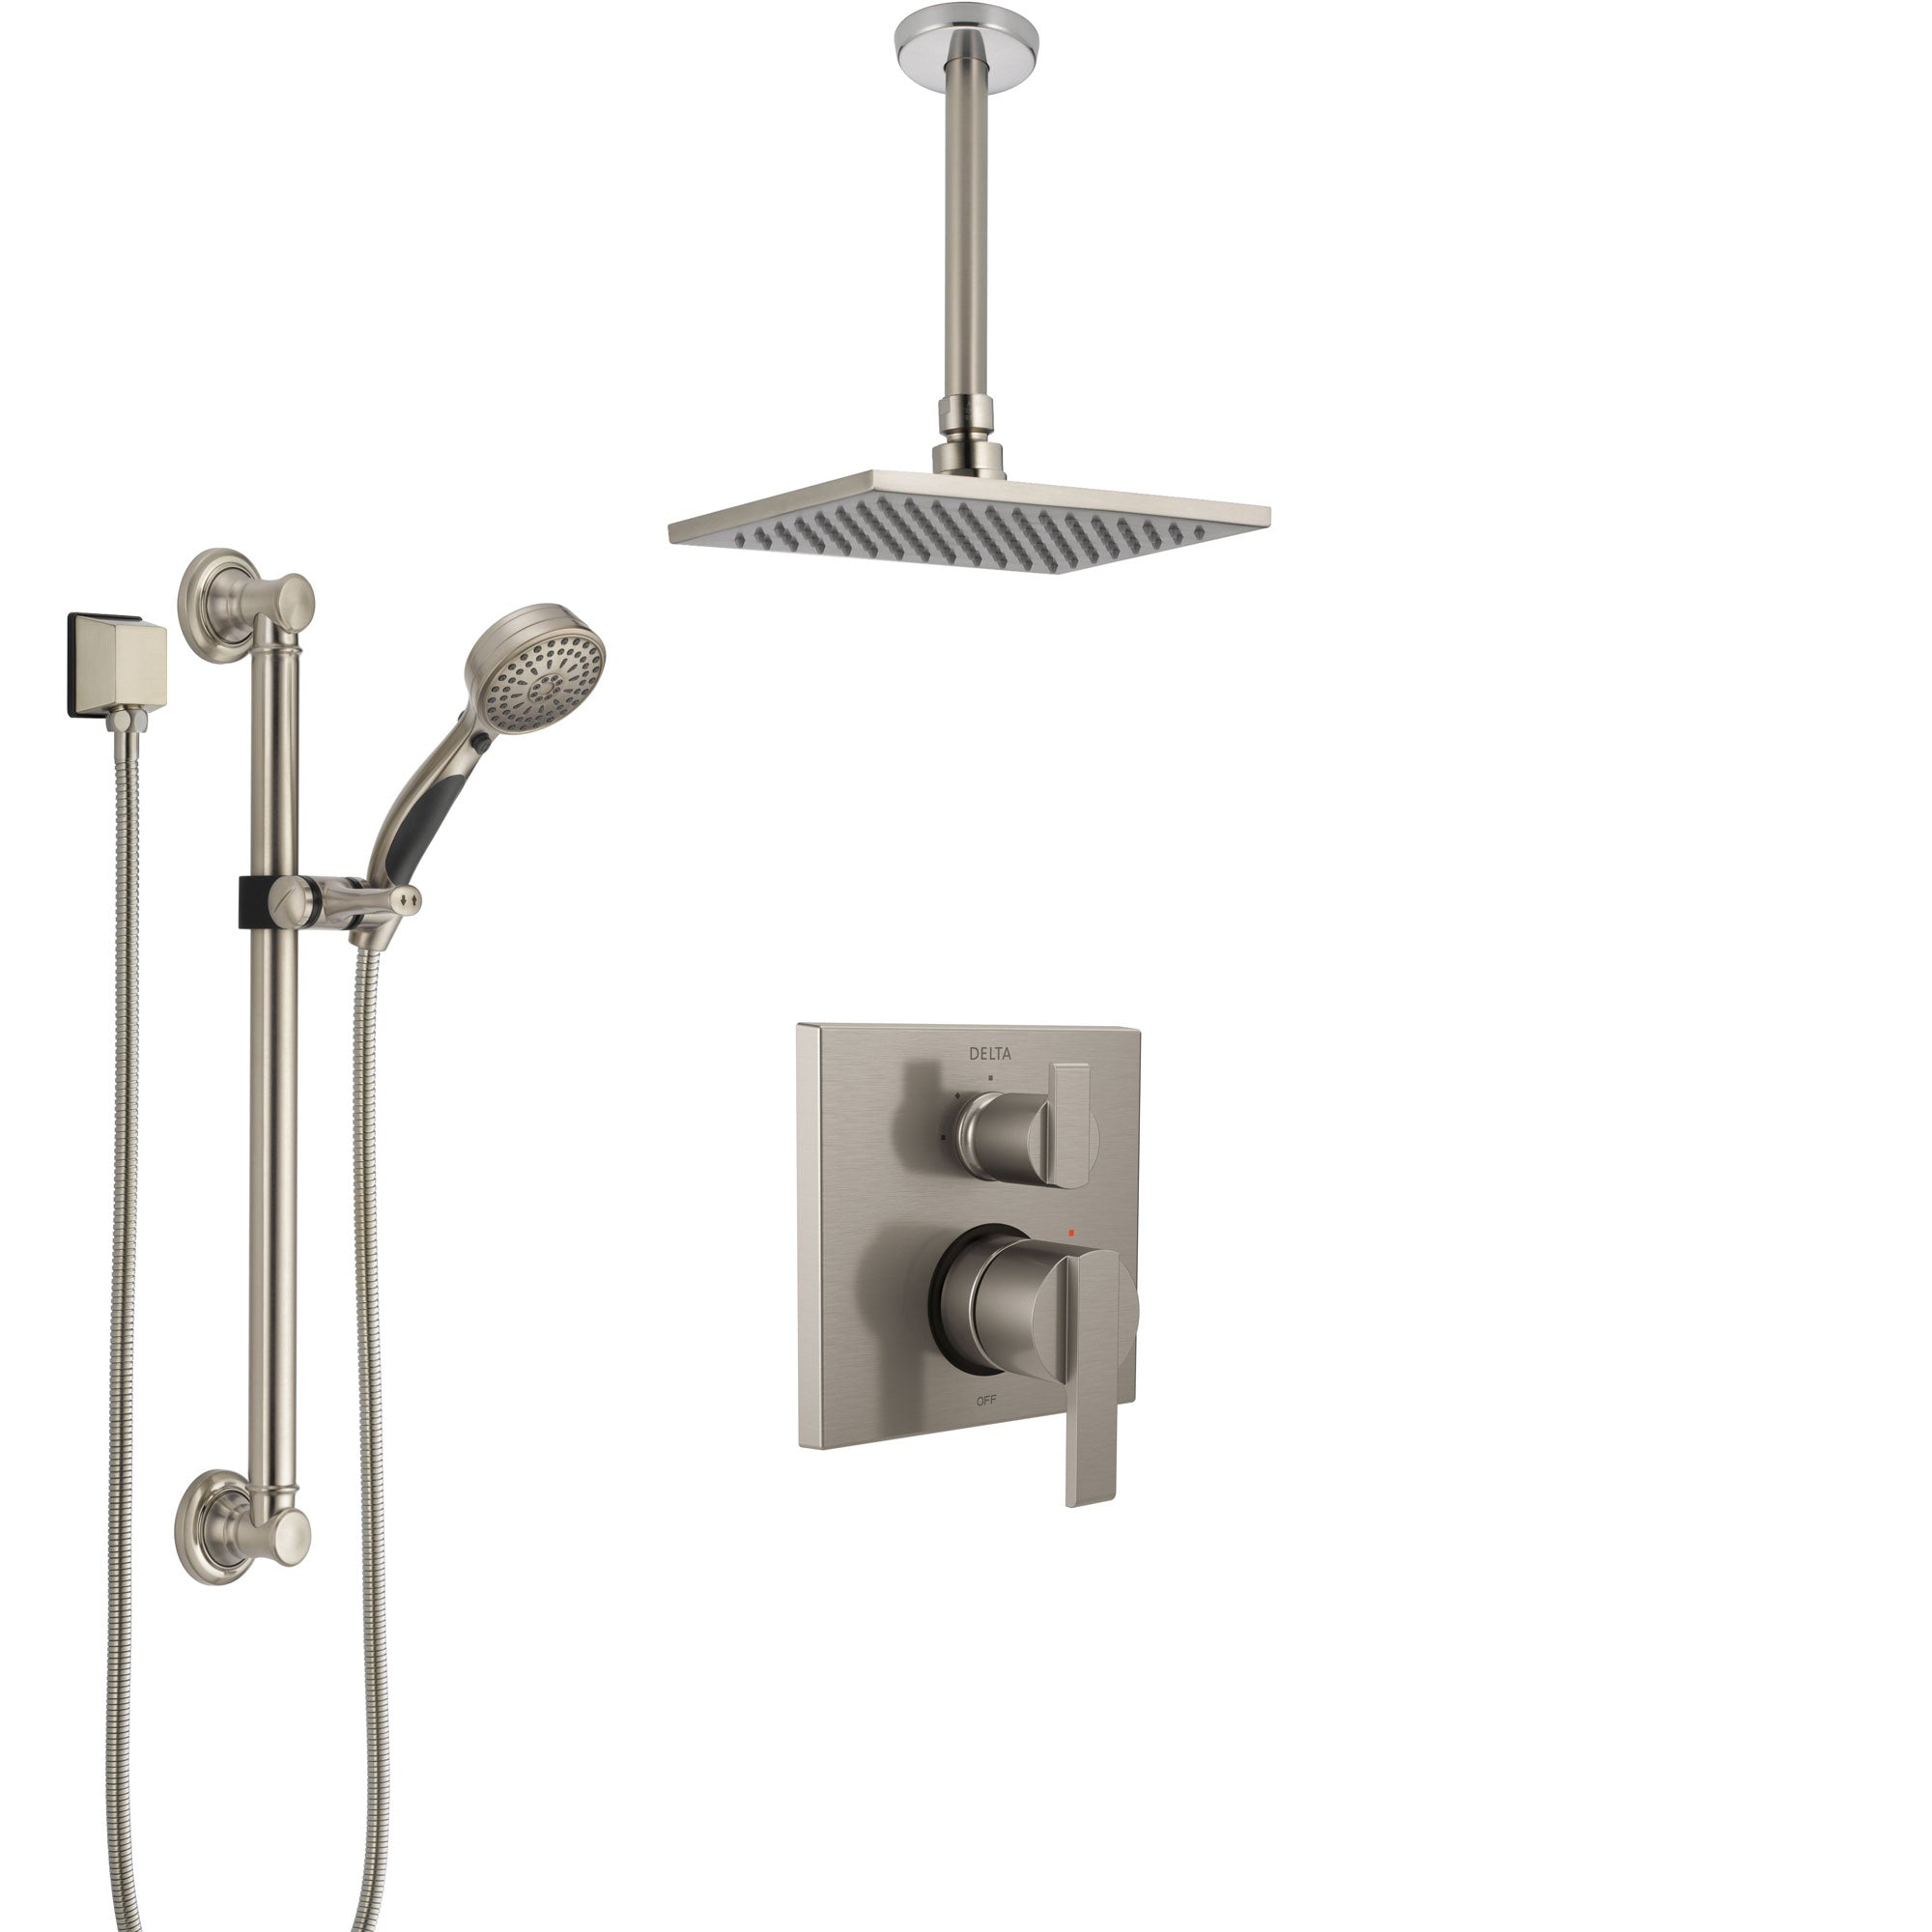 Delta Ara Stainless Steel Finish Shower System with Control Handle, Integrated Diverter, Ceiling Mount Showerhead, and Grab Bar Hand Shower SS24867SS2